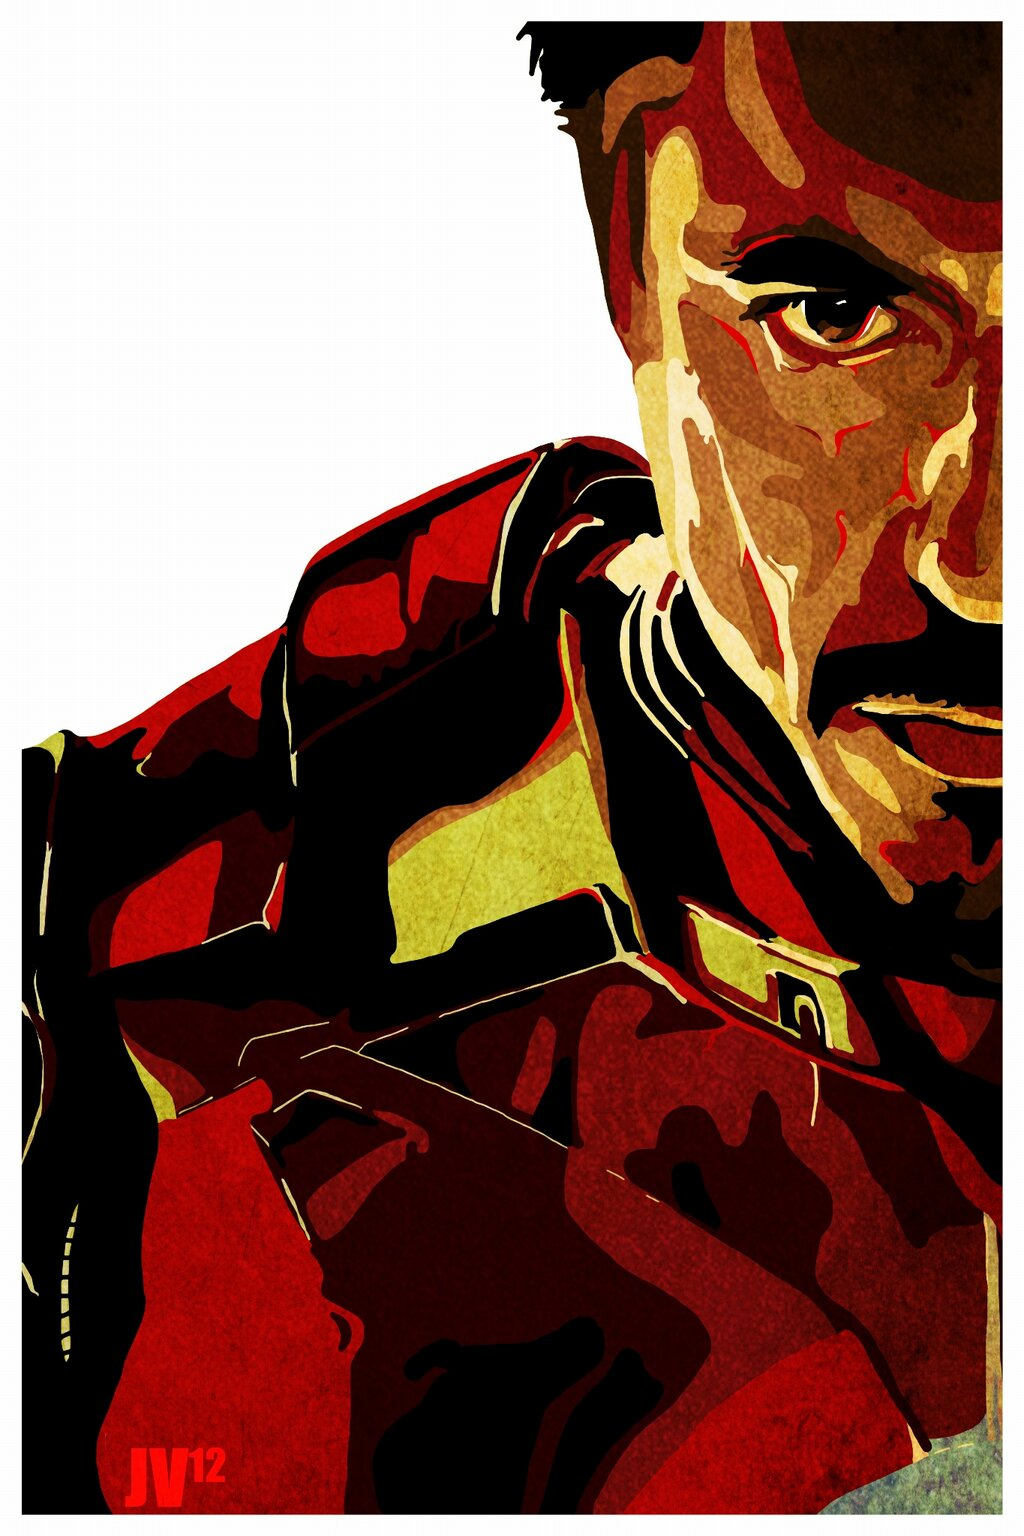 fashion and action: iron mania comic & fan art gallery for iron man